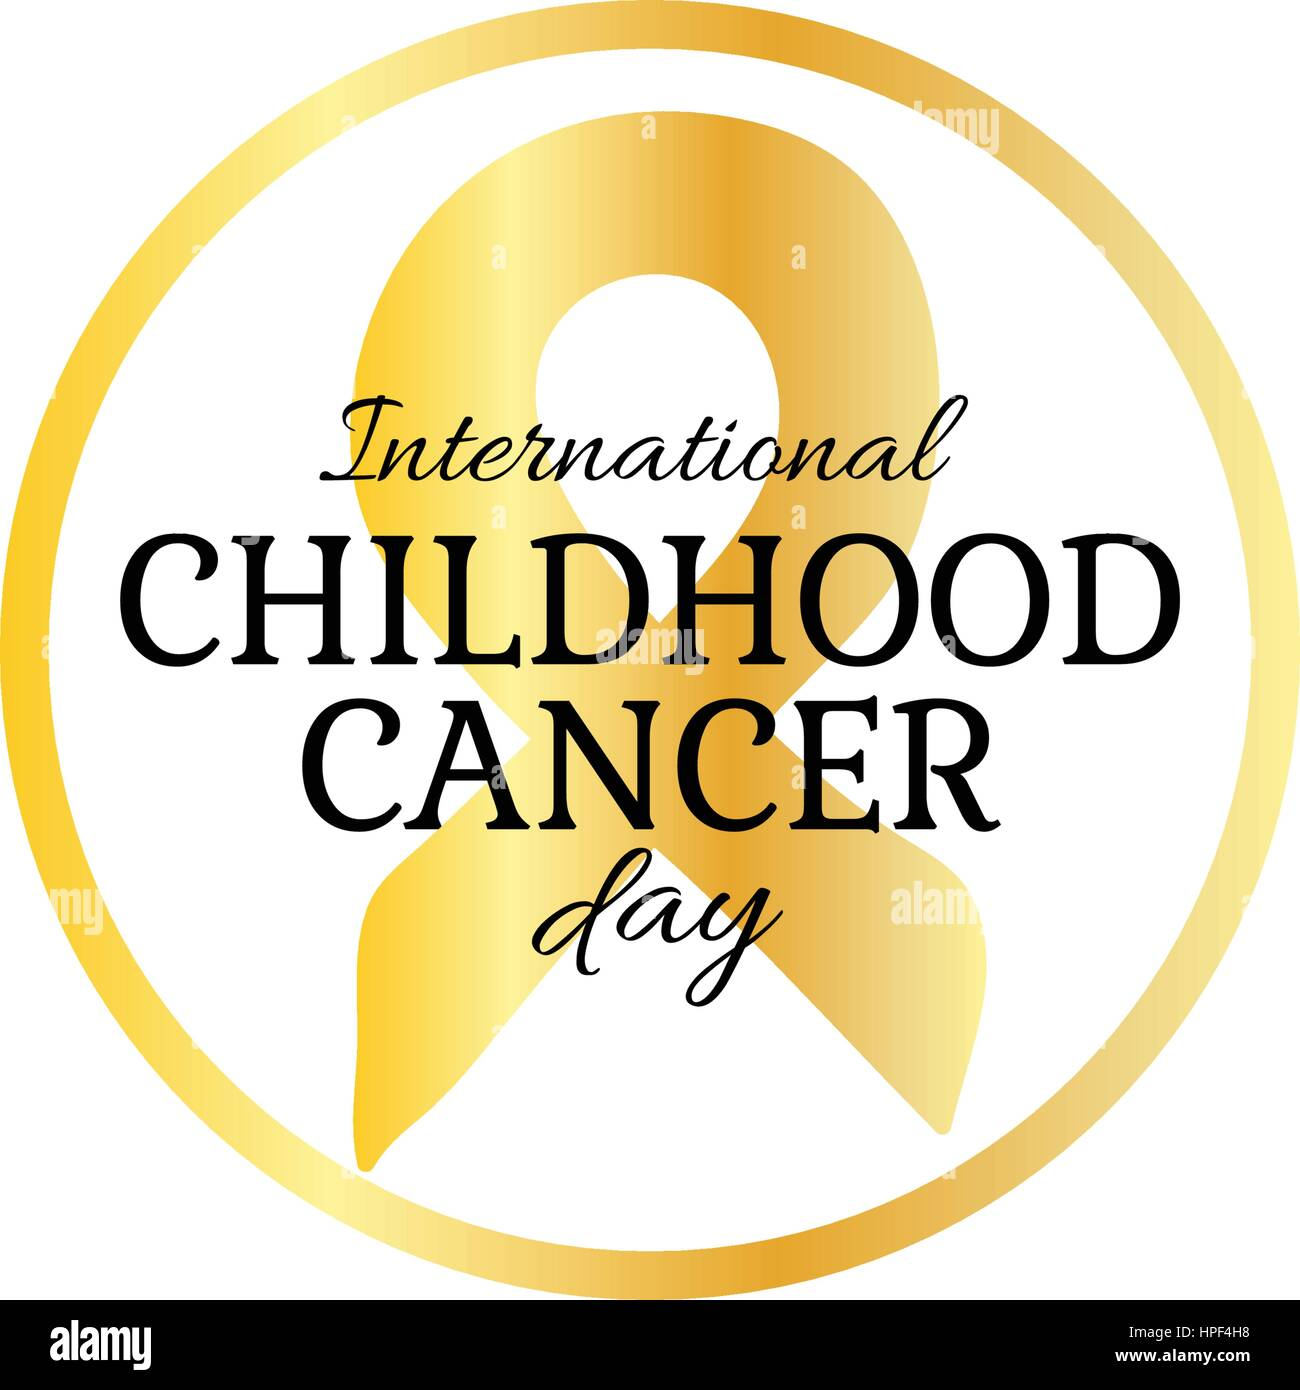 International Childhood Cancer Day Vector Design Element Golden